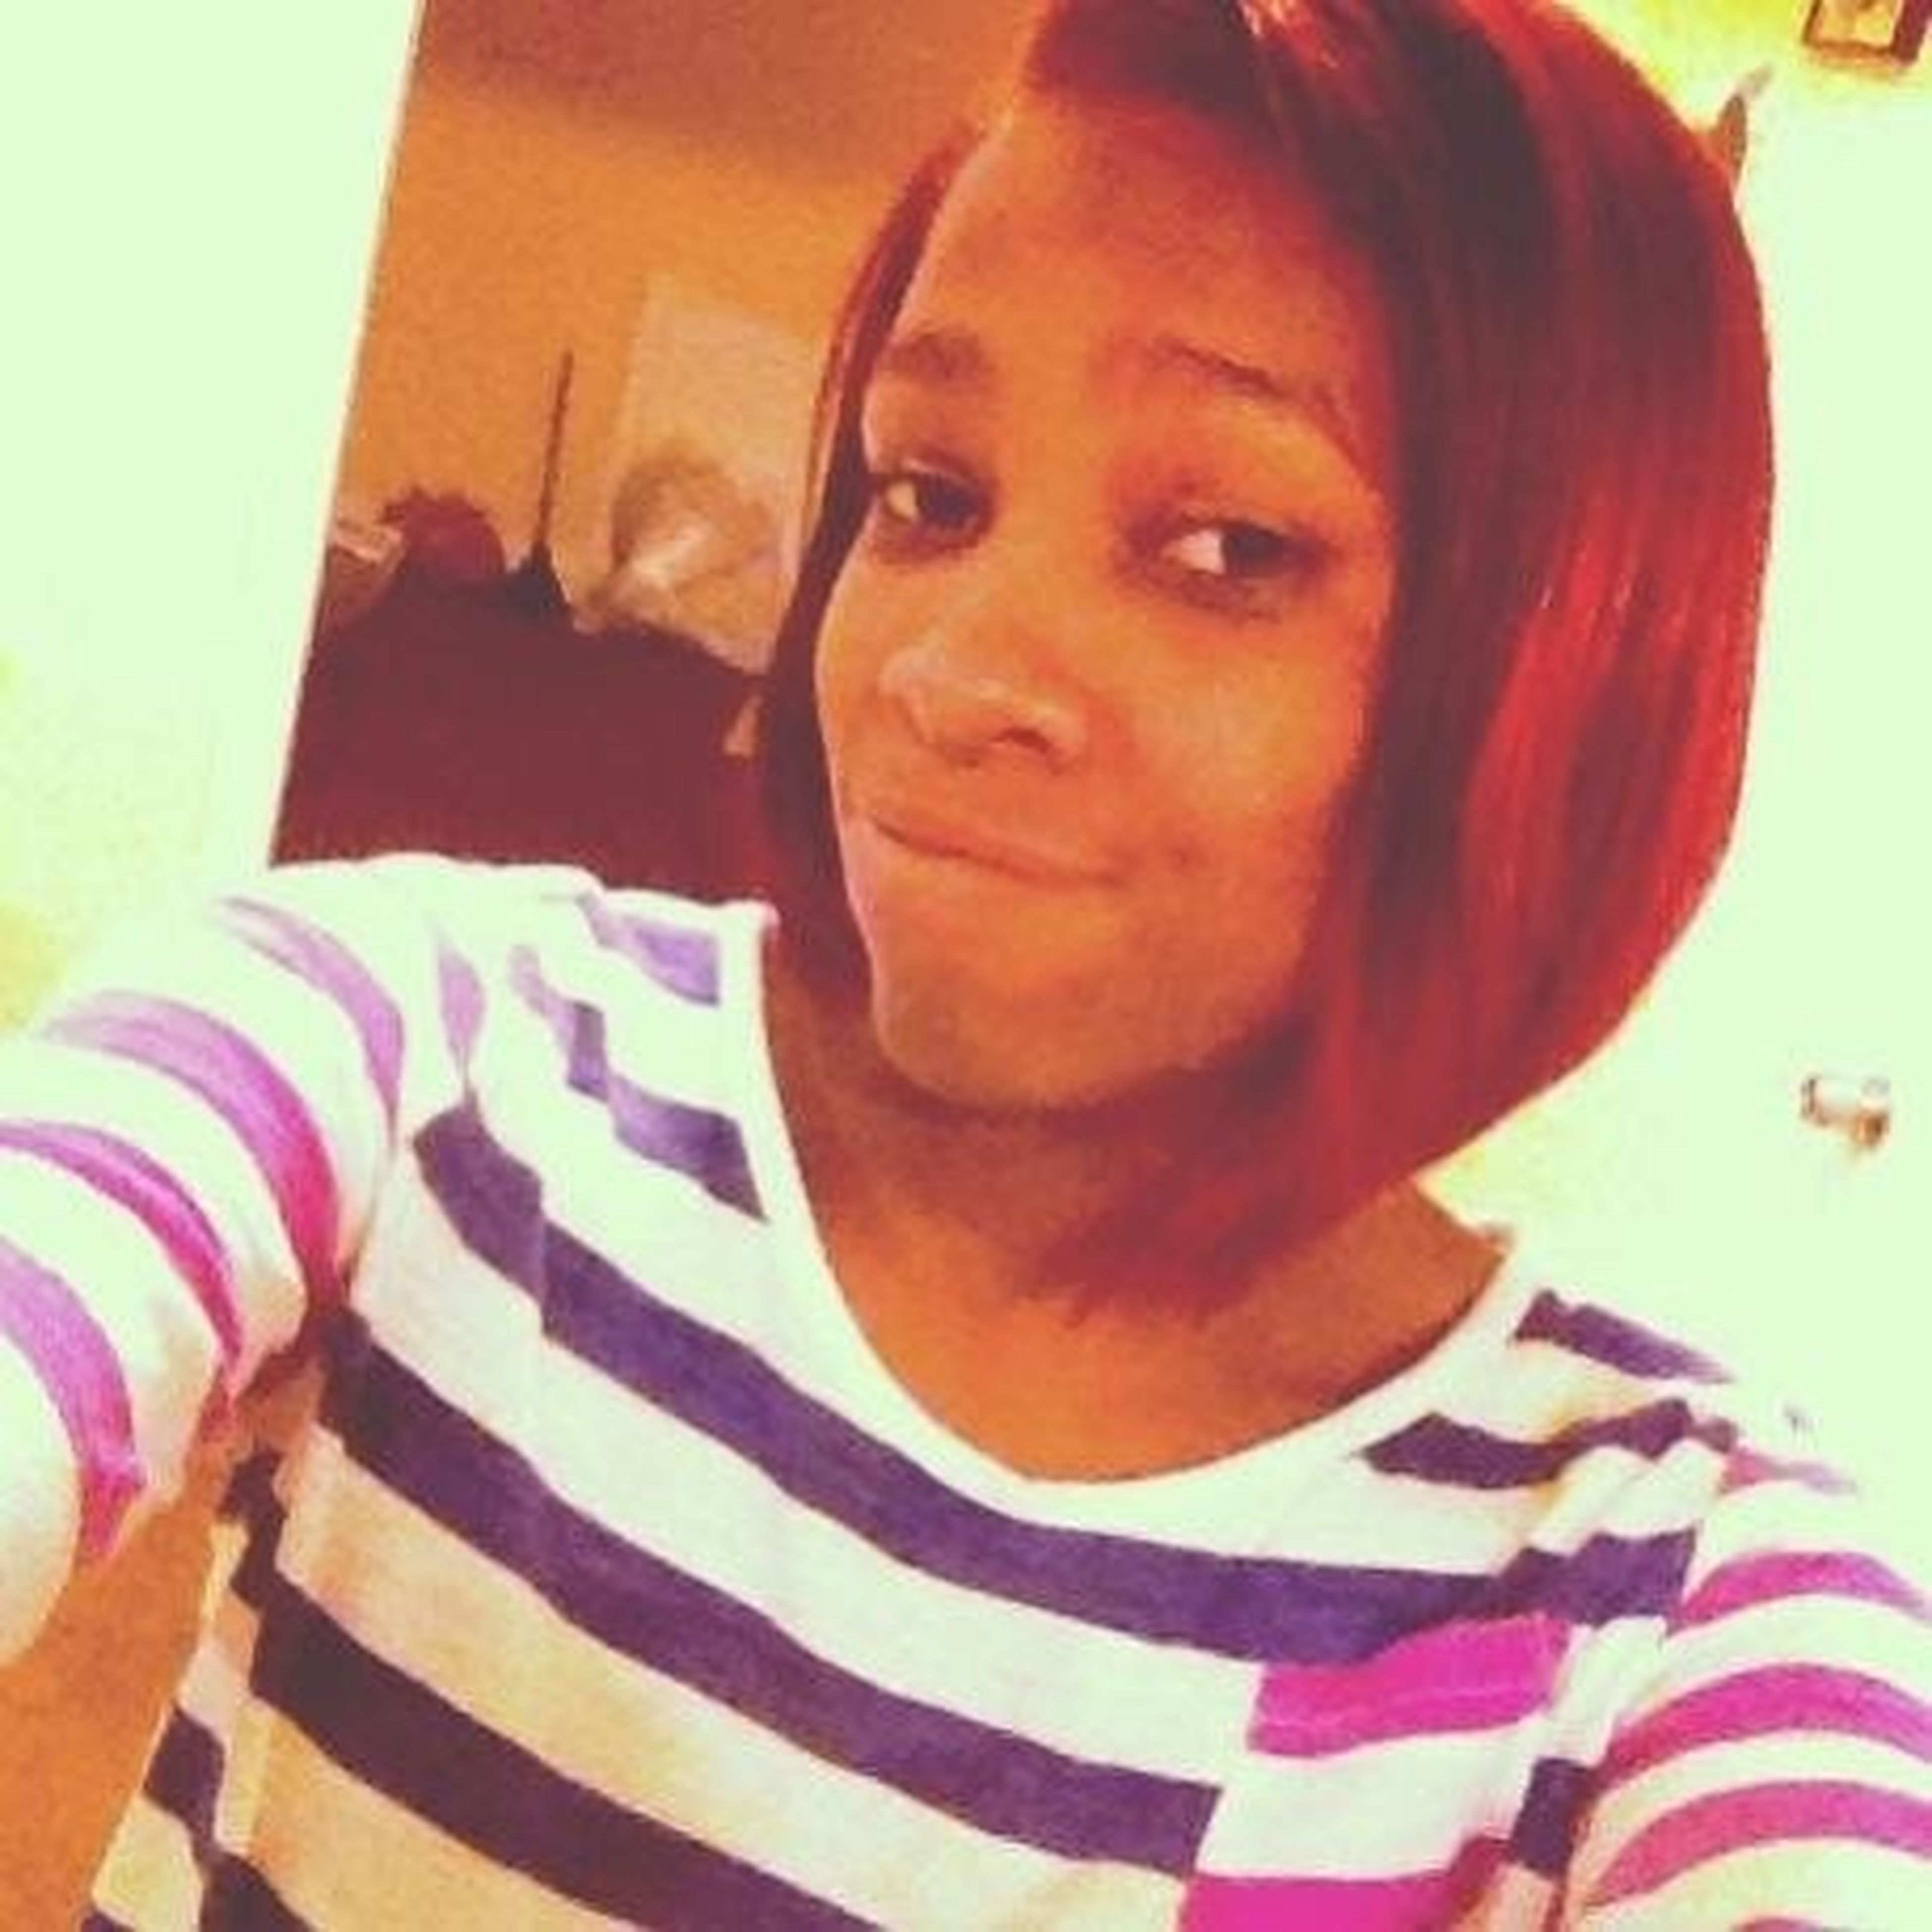 New style dye color red!